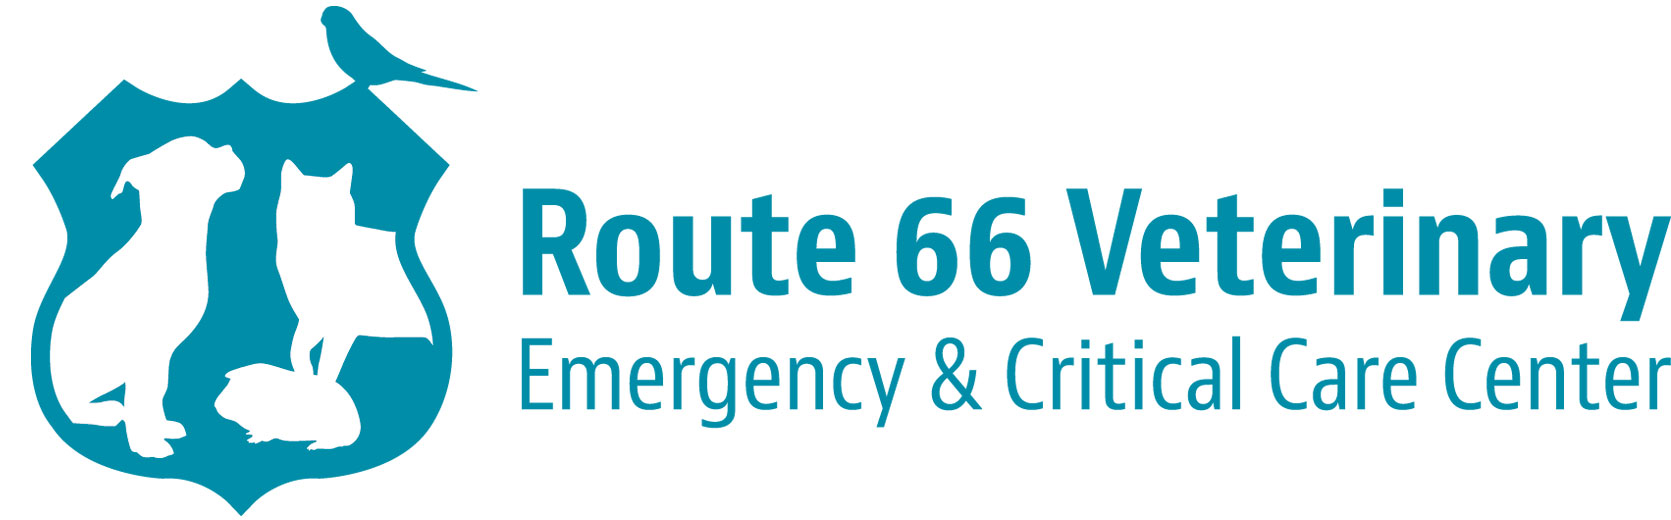 66 1257 Best Route 66 Images On Pinterest Route 66 Road  : Rt66VetLogoCOLOR from otri.us size 1671 x 520 jpeg 92kB